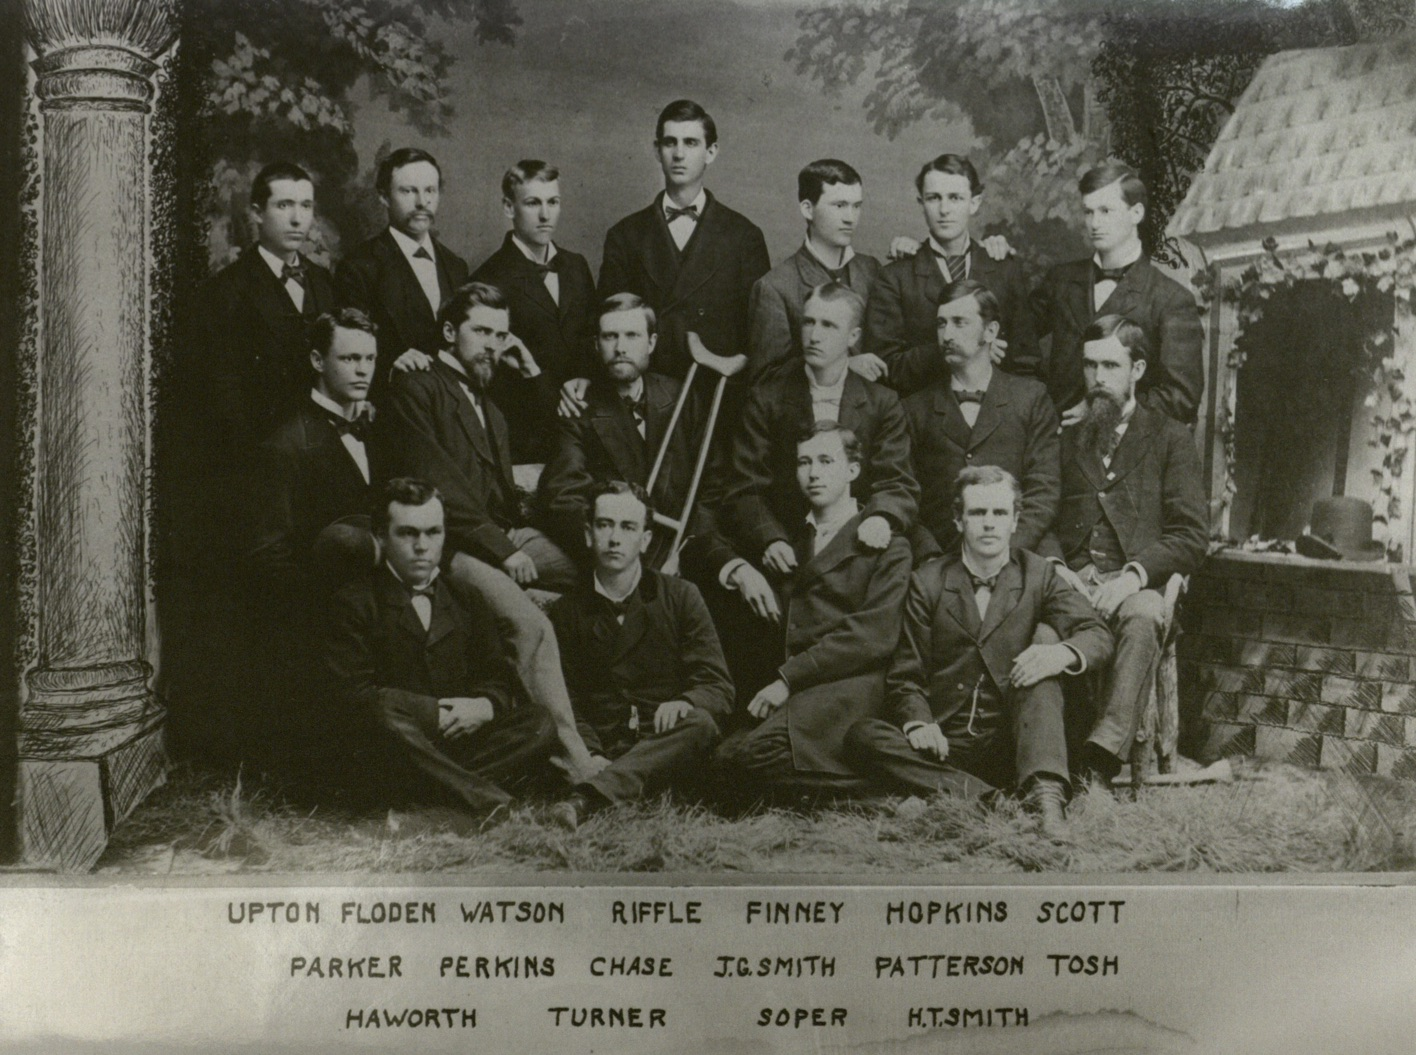 First known photo of Alpha Nu Betas.